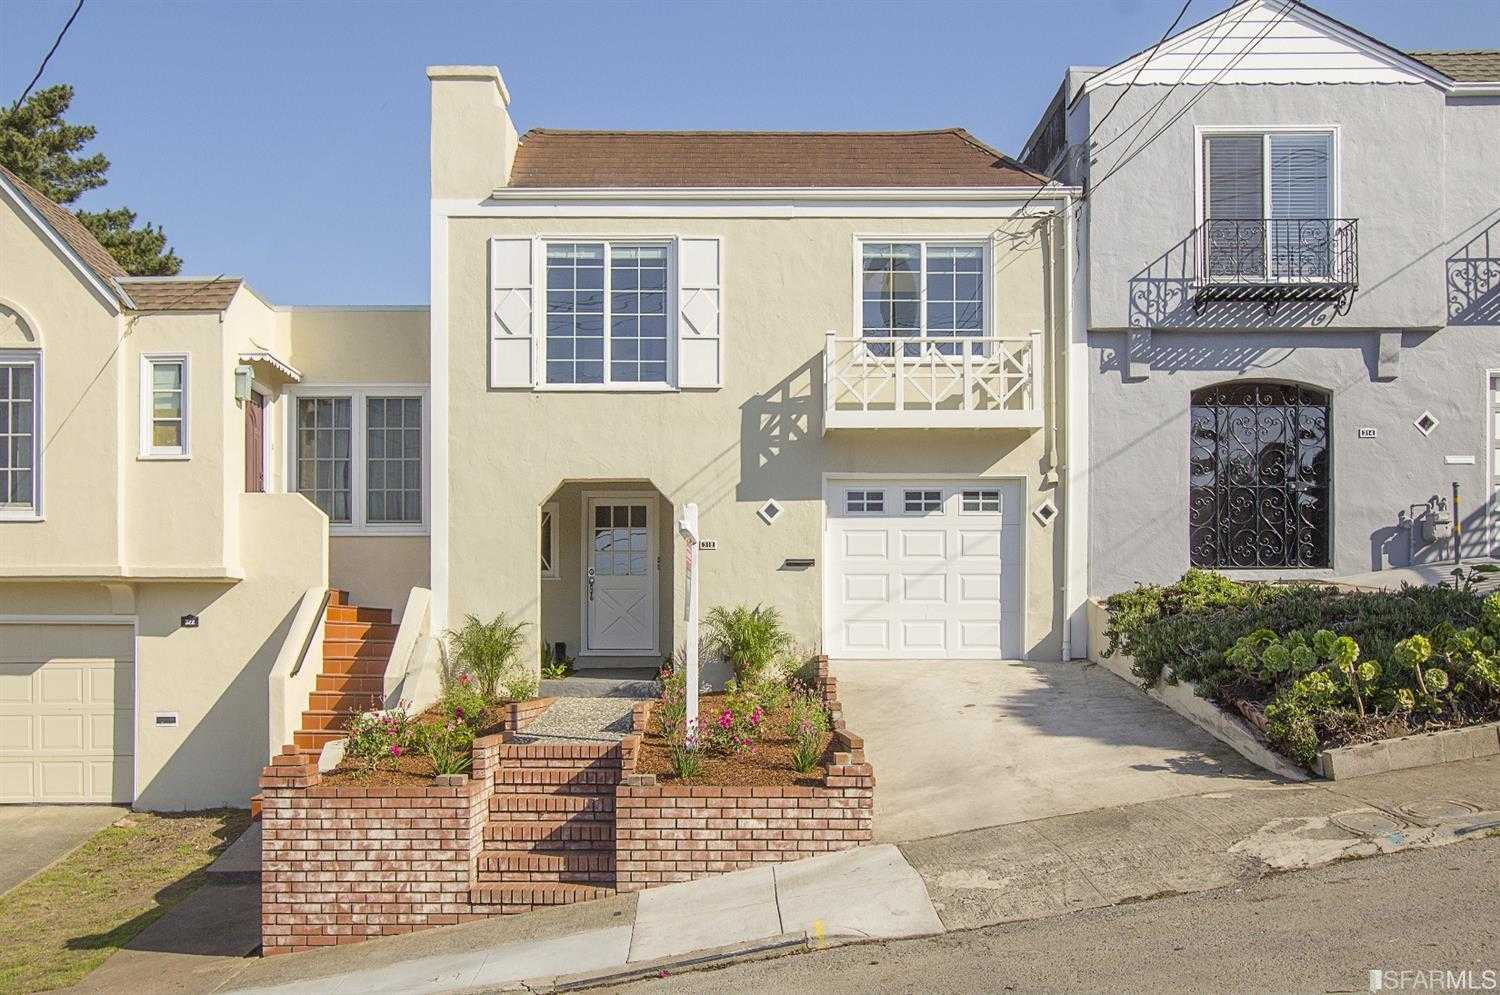 $995,000   3Br/2Ba   For Sale In San Francisco. Open House